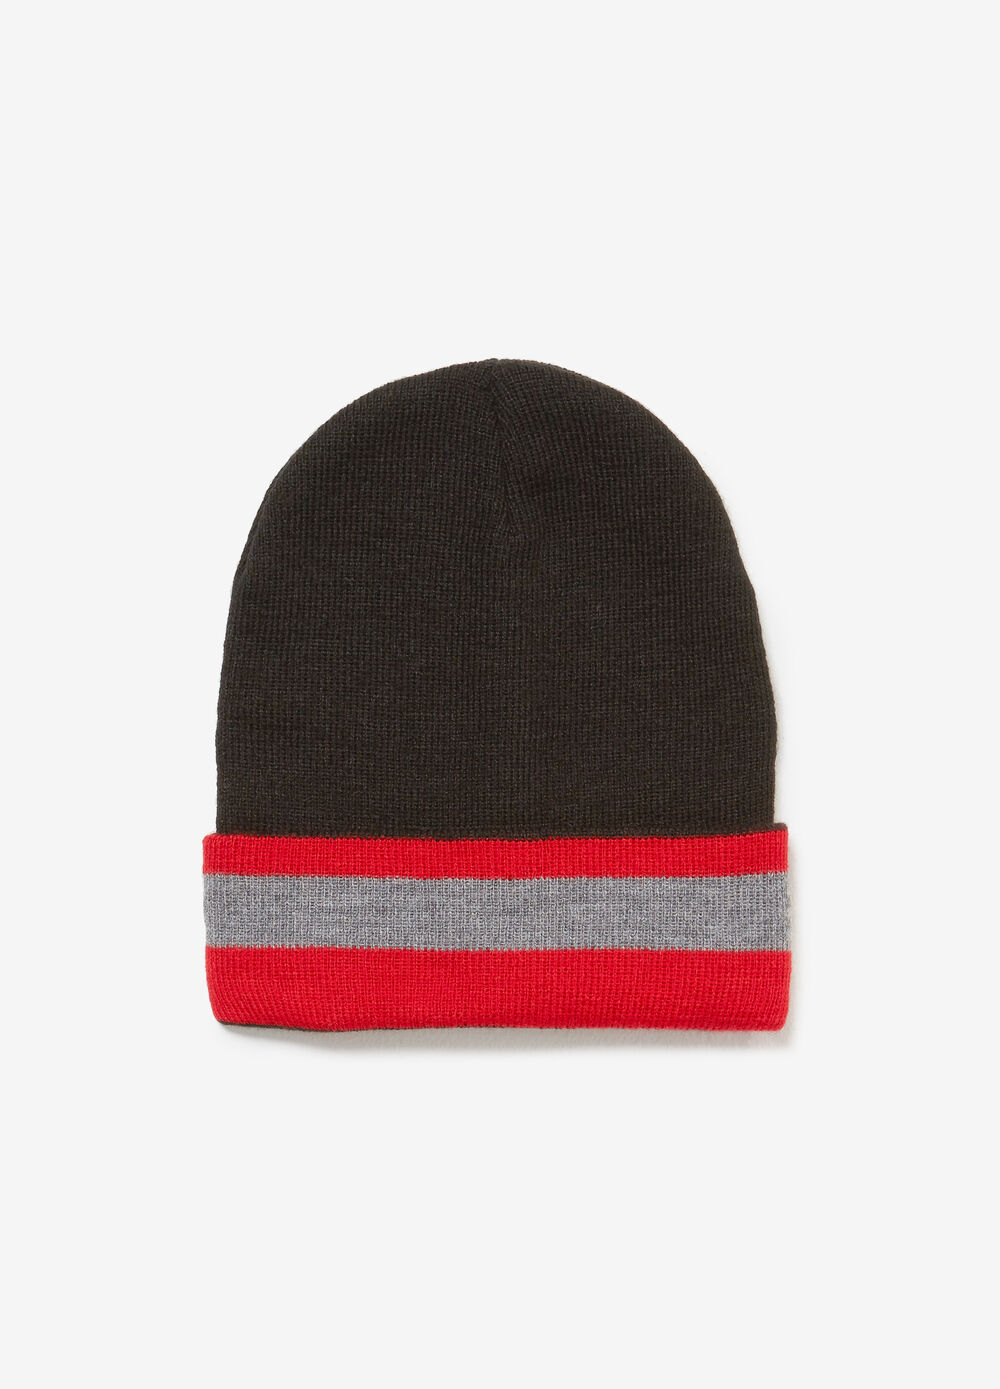 Beanie cap with striped turn-up